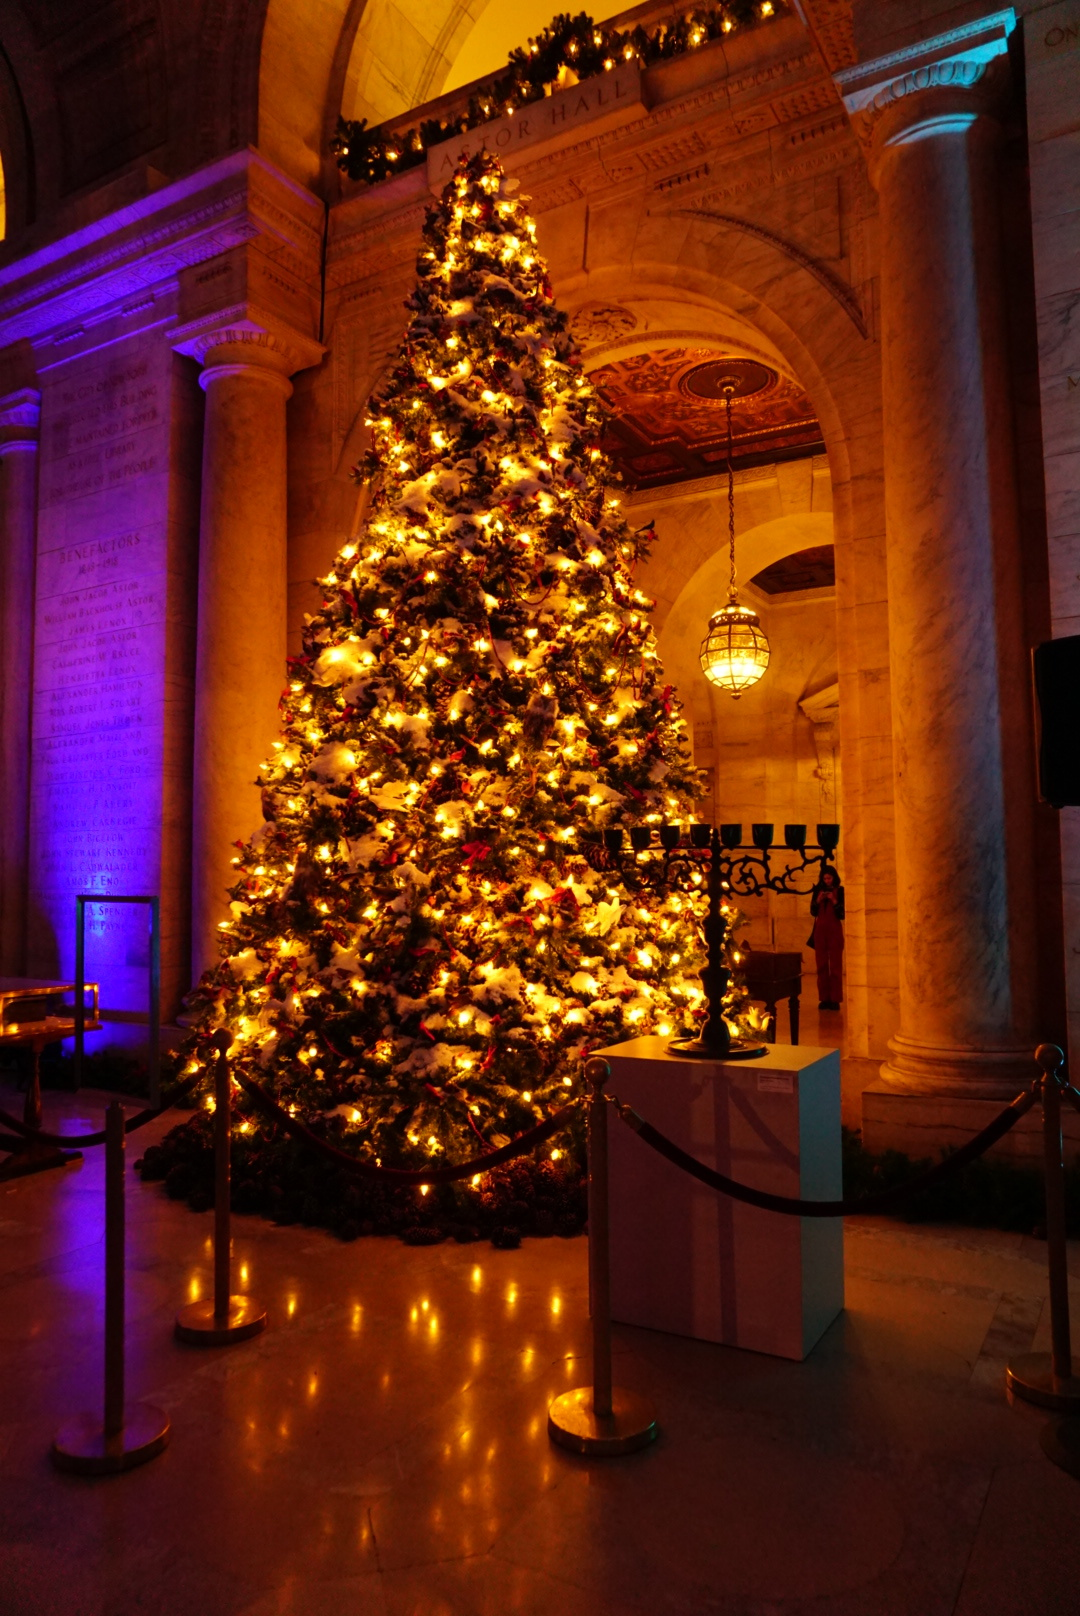 New York Public Library    and it's beautiful Christmas tree this year.